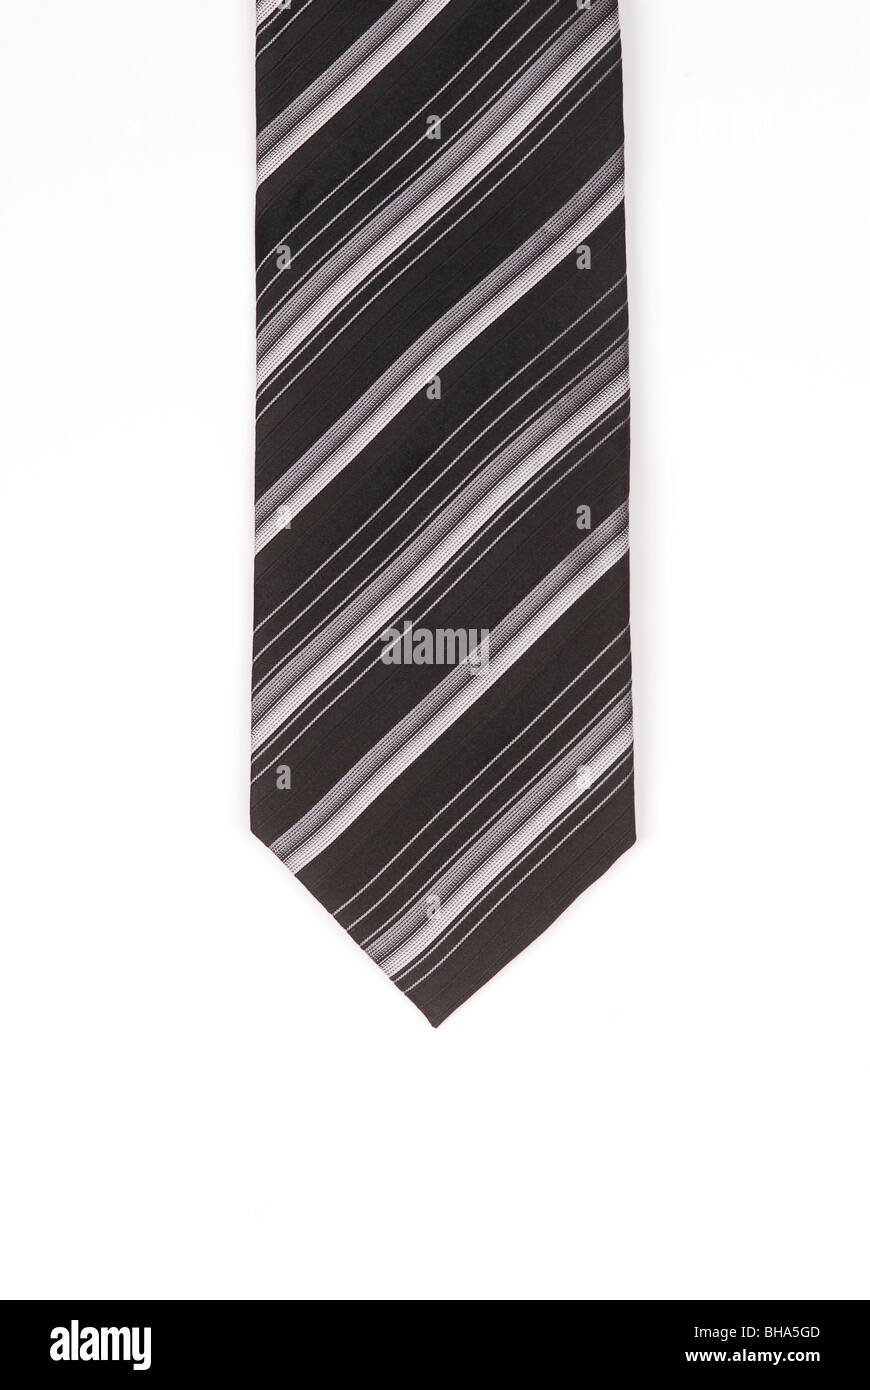 Striped black and white tie on a white backgroundUK - Stock Image